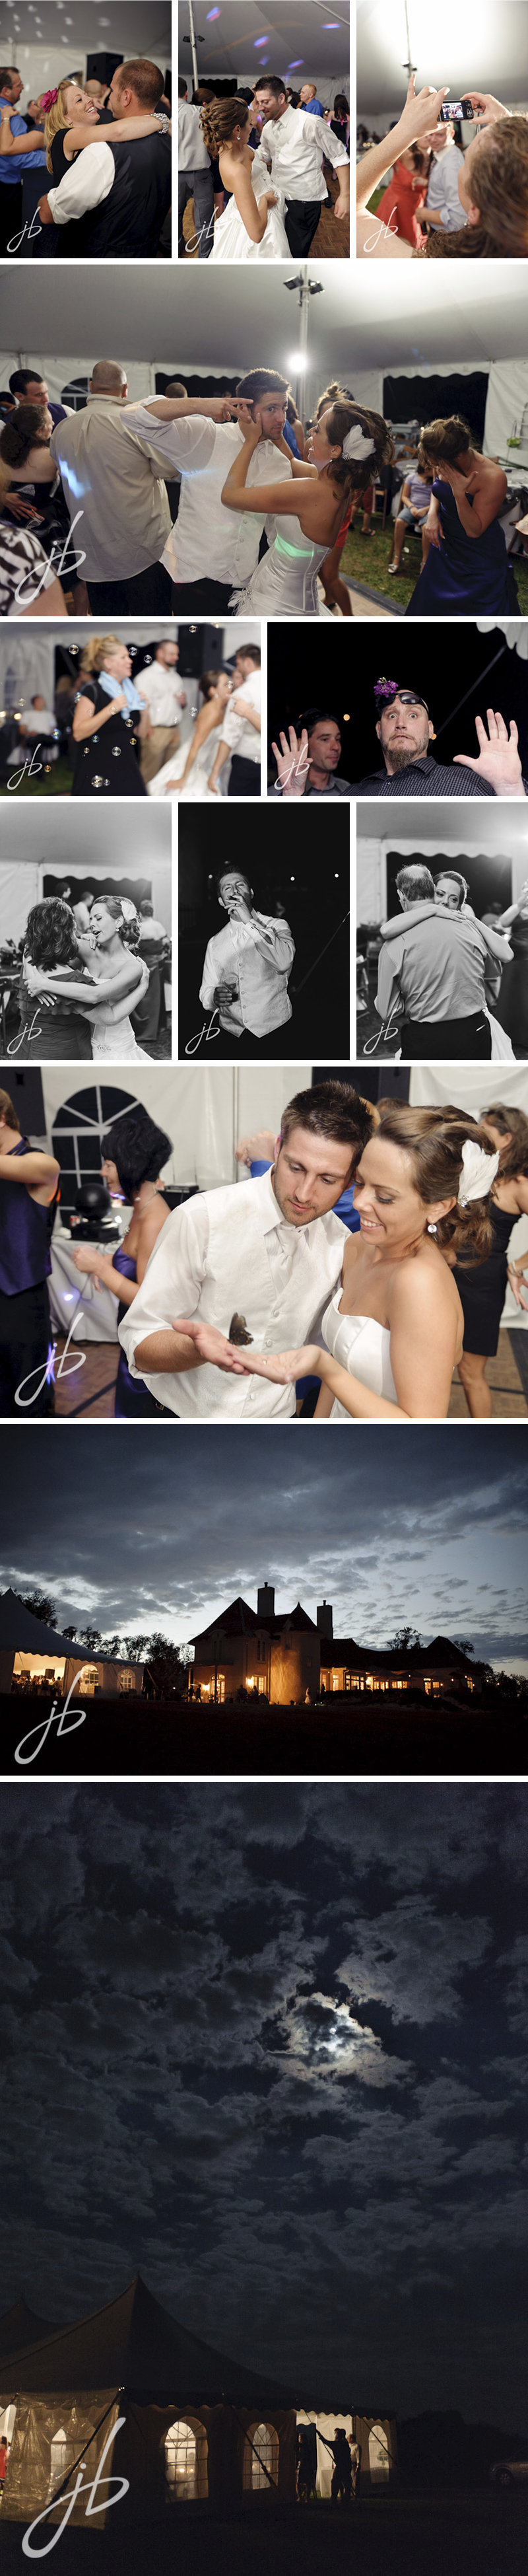 Wrightsville, PA wedding Photography by Jeremy Bischoff Photography